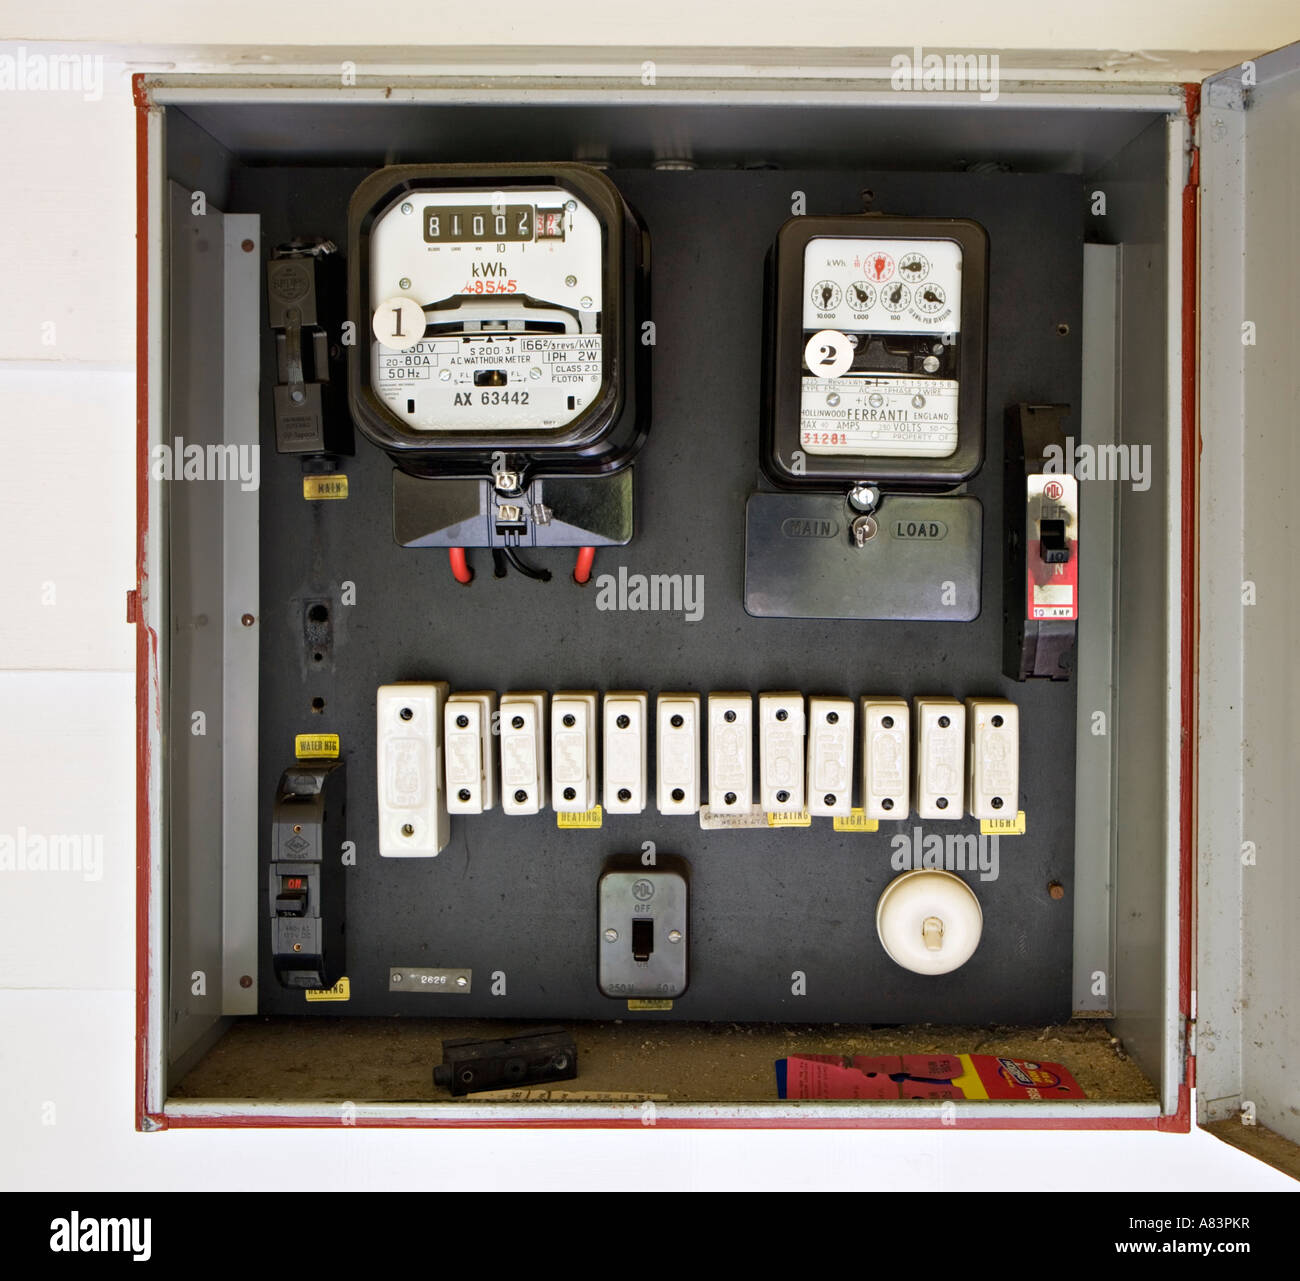 e90 fuse box old style wiring diagrams Simple Wiring Diagrams old style residential fuse box wiring diagram databaseold style dodge van fuse box 19 13 malawi24